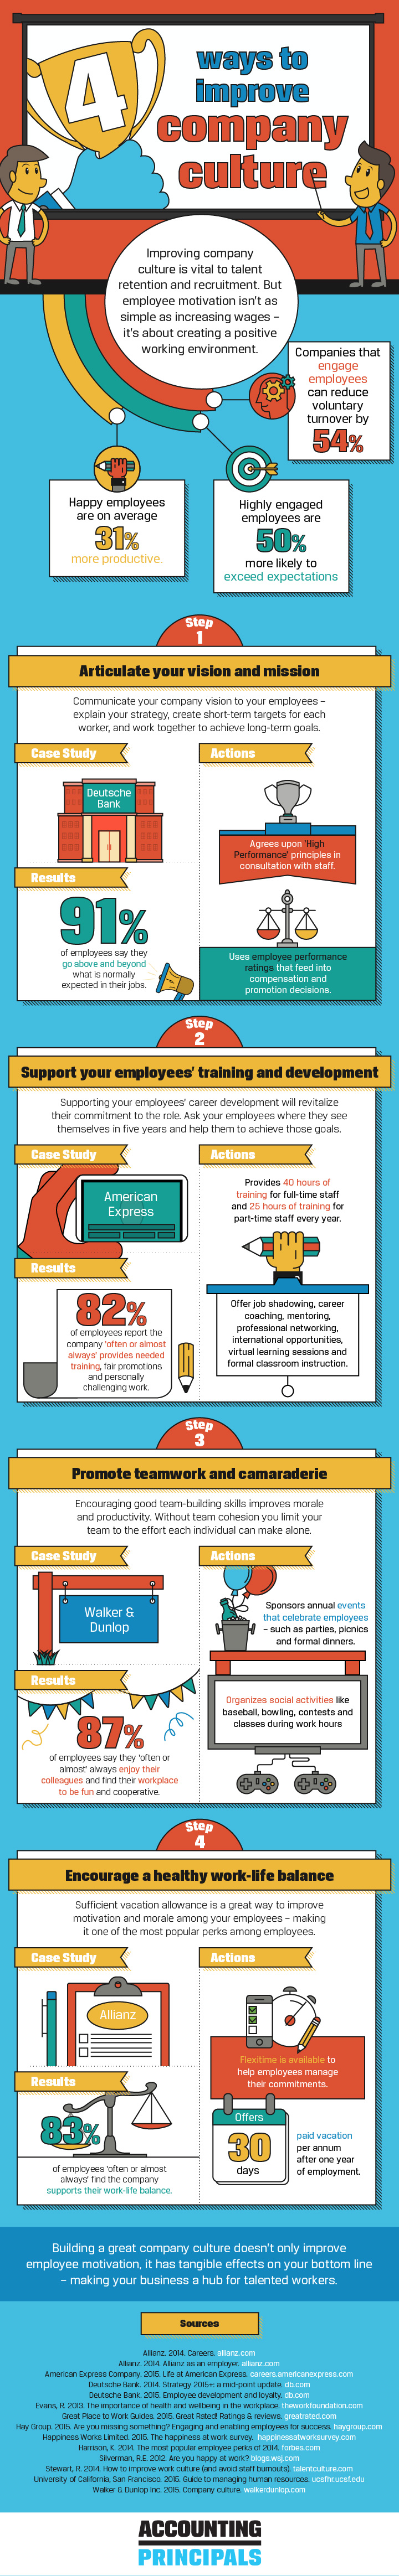 Ways to improve company culture infographic